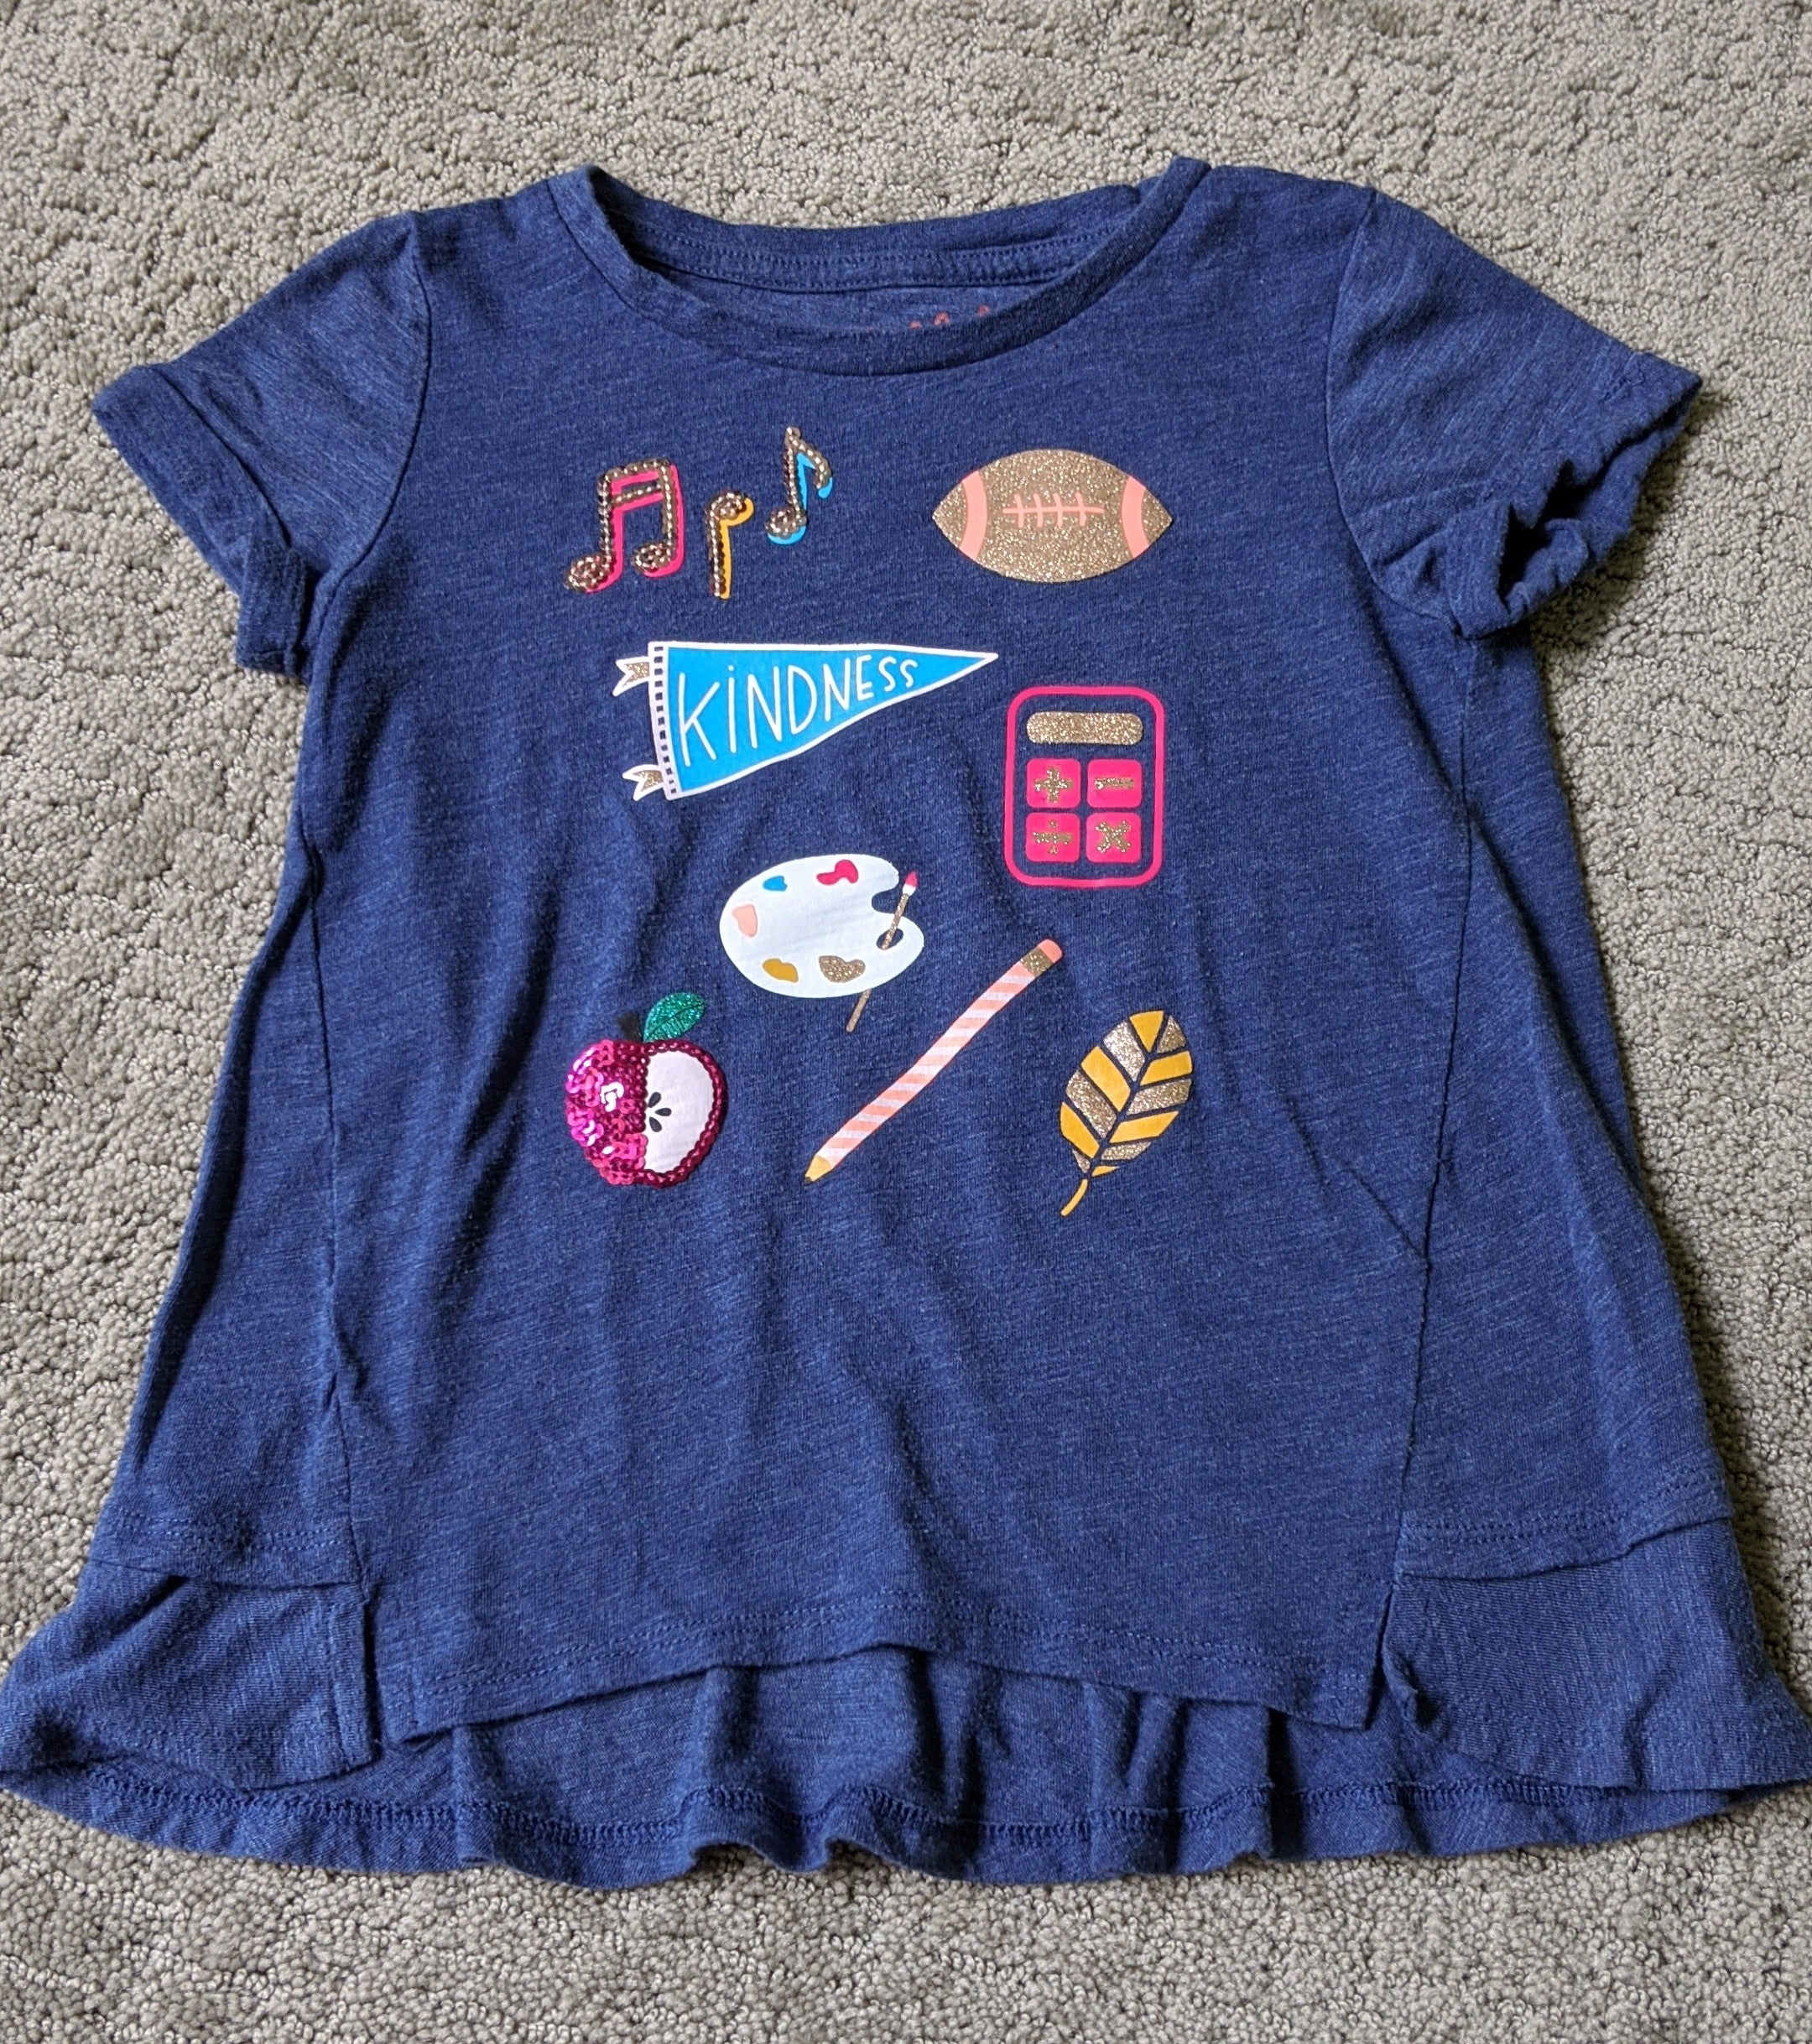 Cat & Jack blue t shirt with kindness theme, Size 6